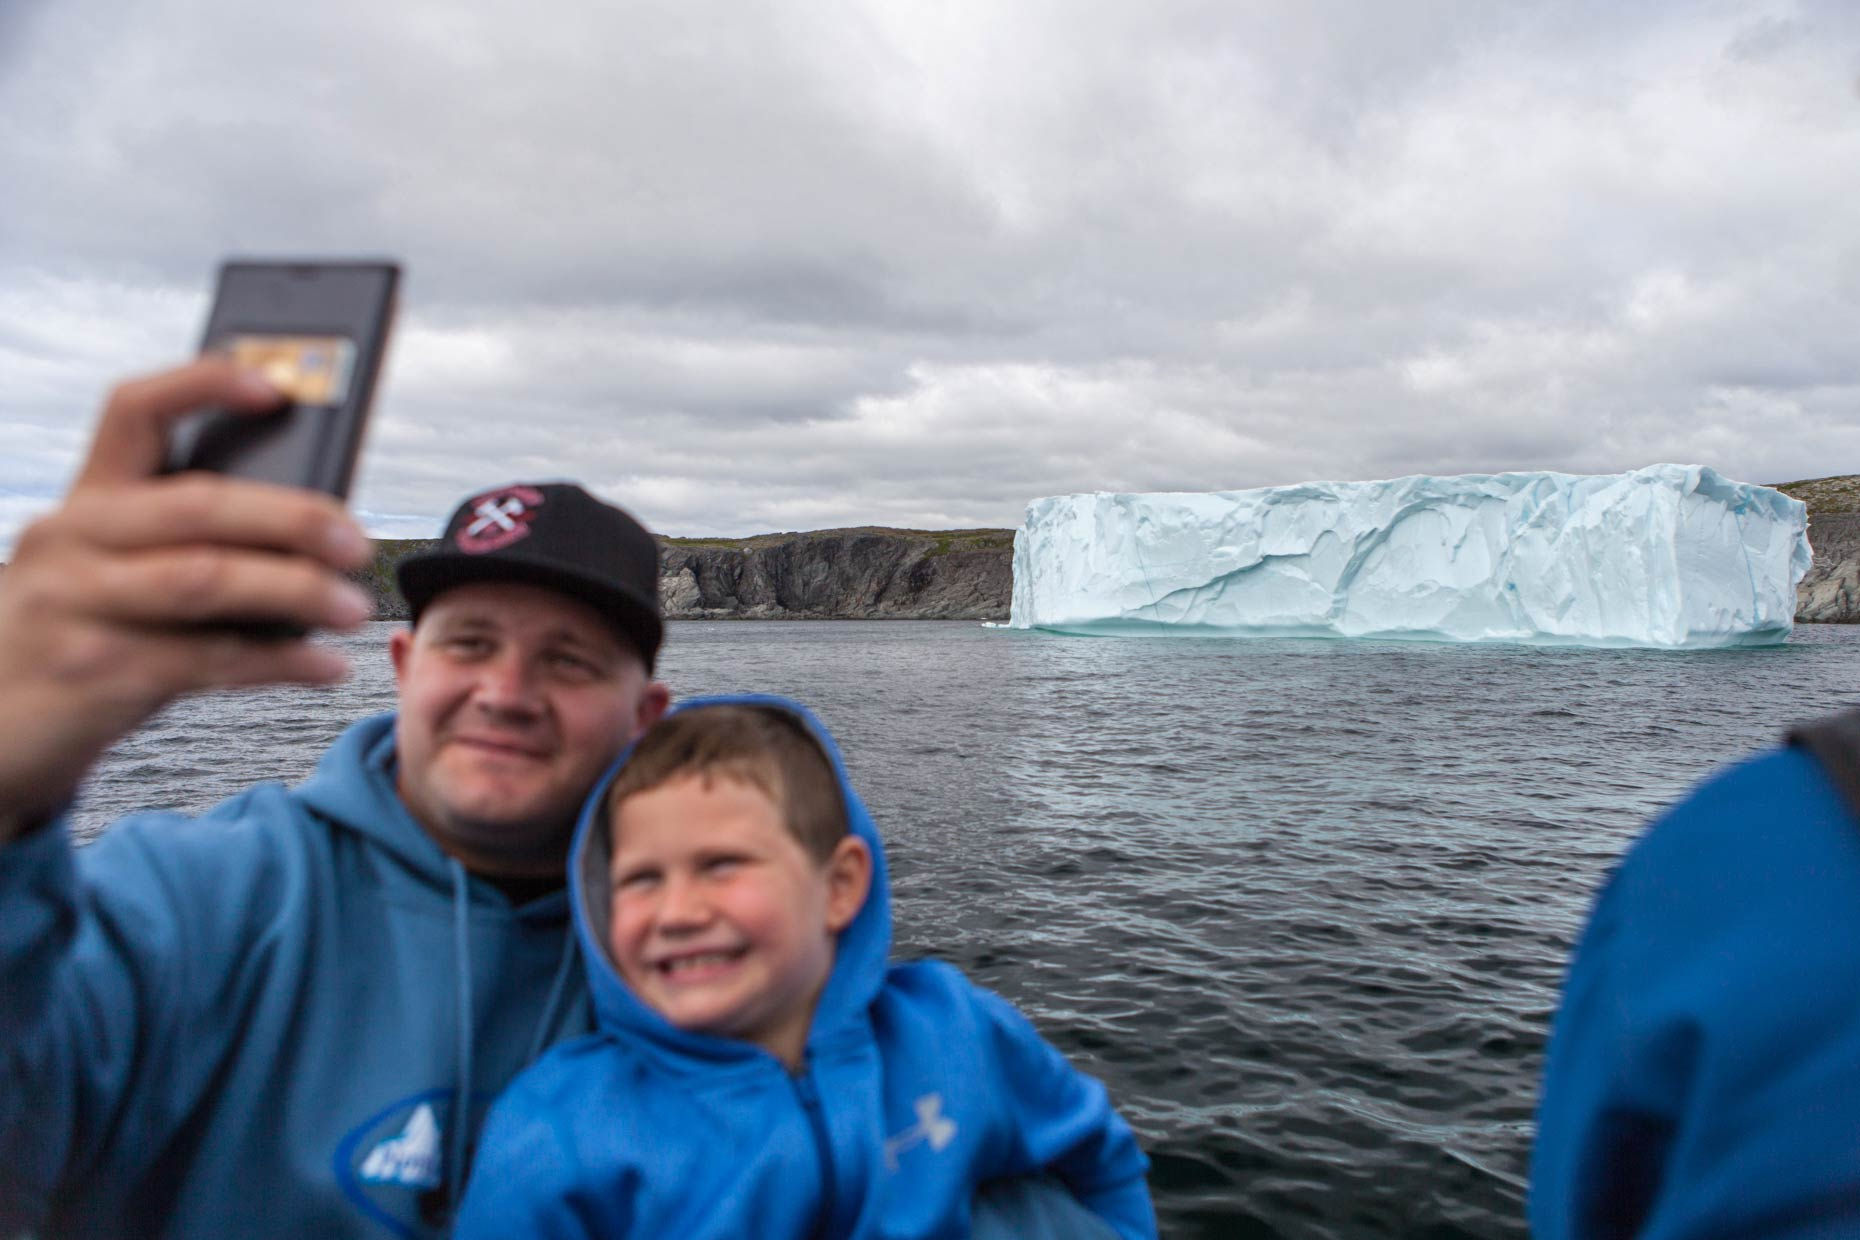 Travel Photography + Multimedia │Iceberg Spotting in Newfoundland